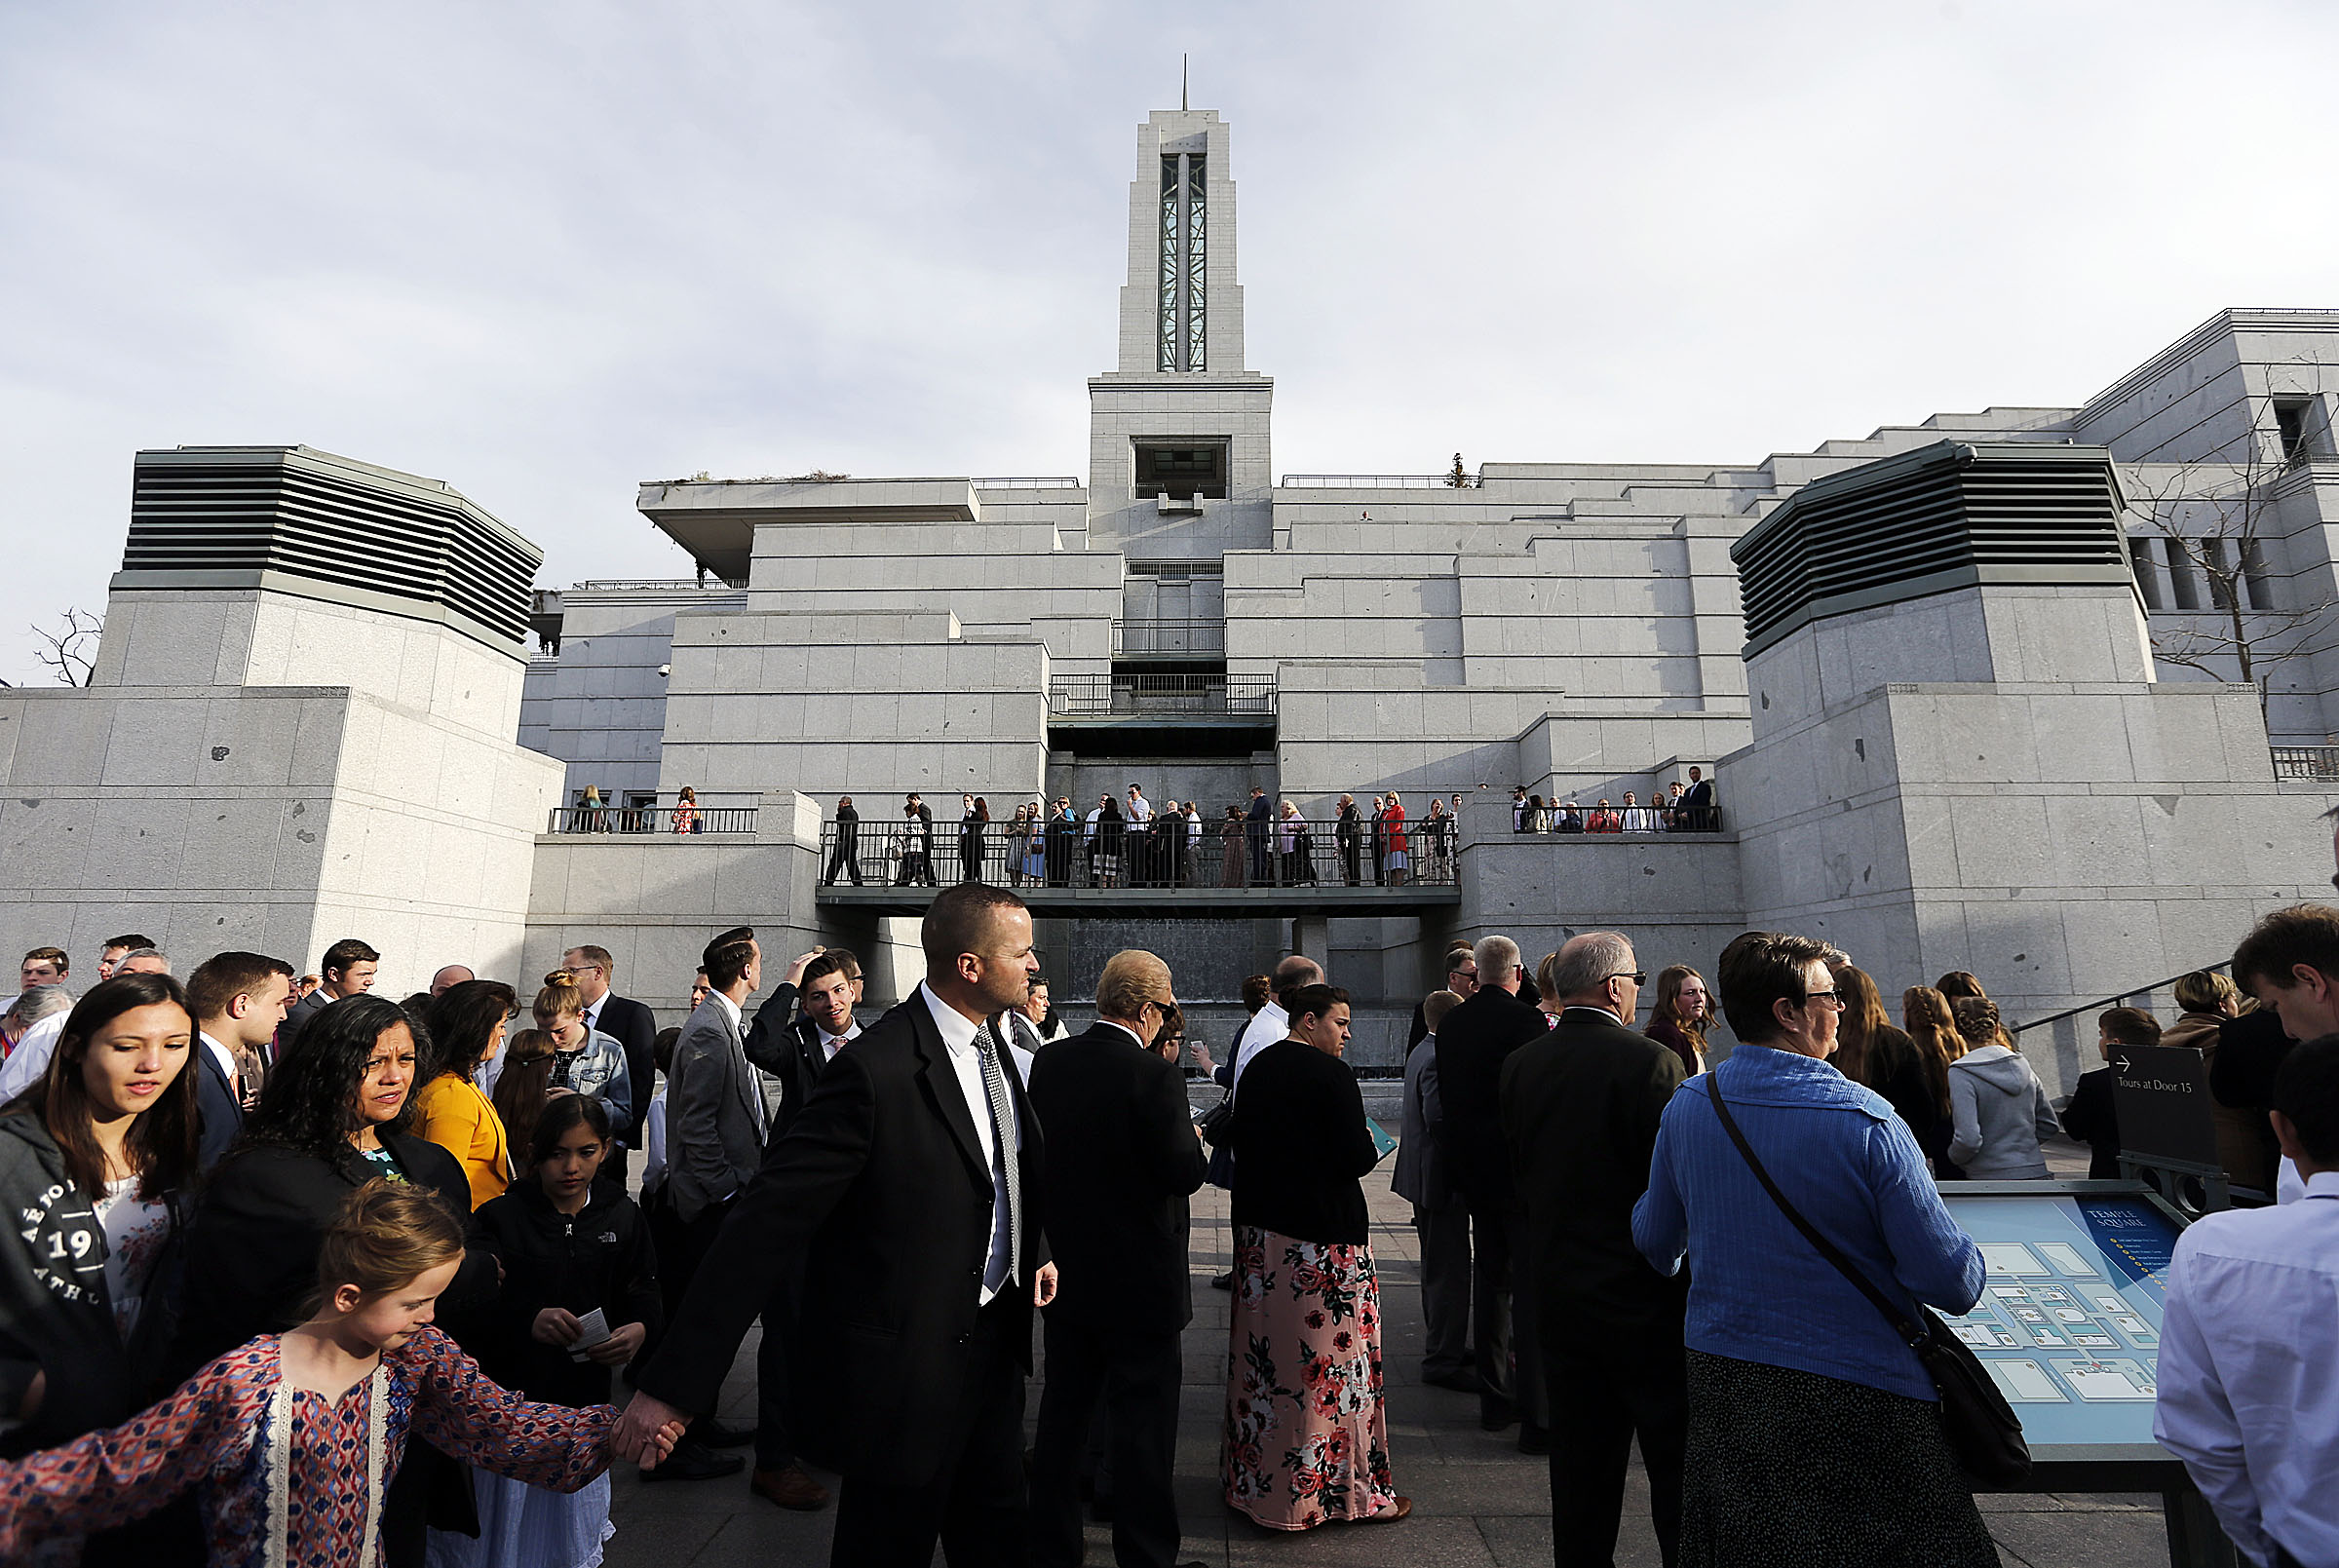 Conferencegoers line up before the Saturday morning session of the 188th Annual General Conference of The Church of Jesus Christ of Latter-day Saints in Salt Lake City on Saturday, March 31, 2018.